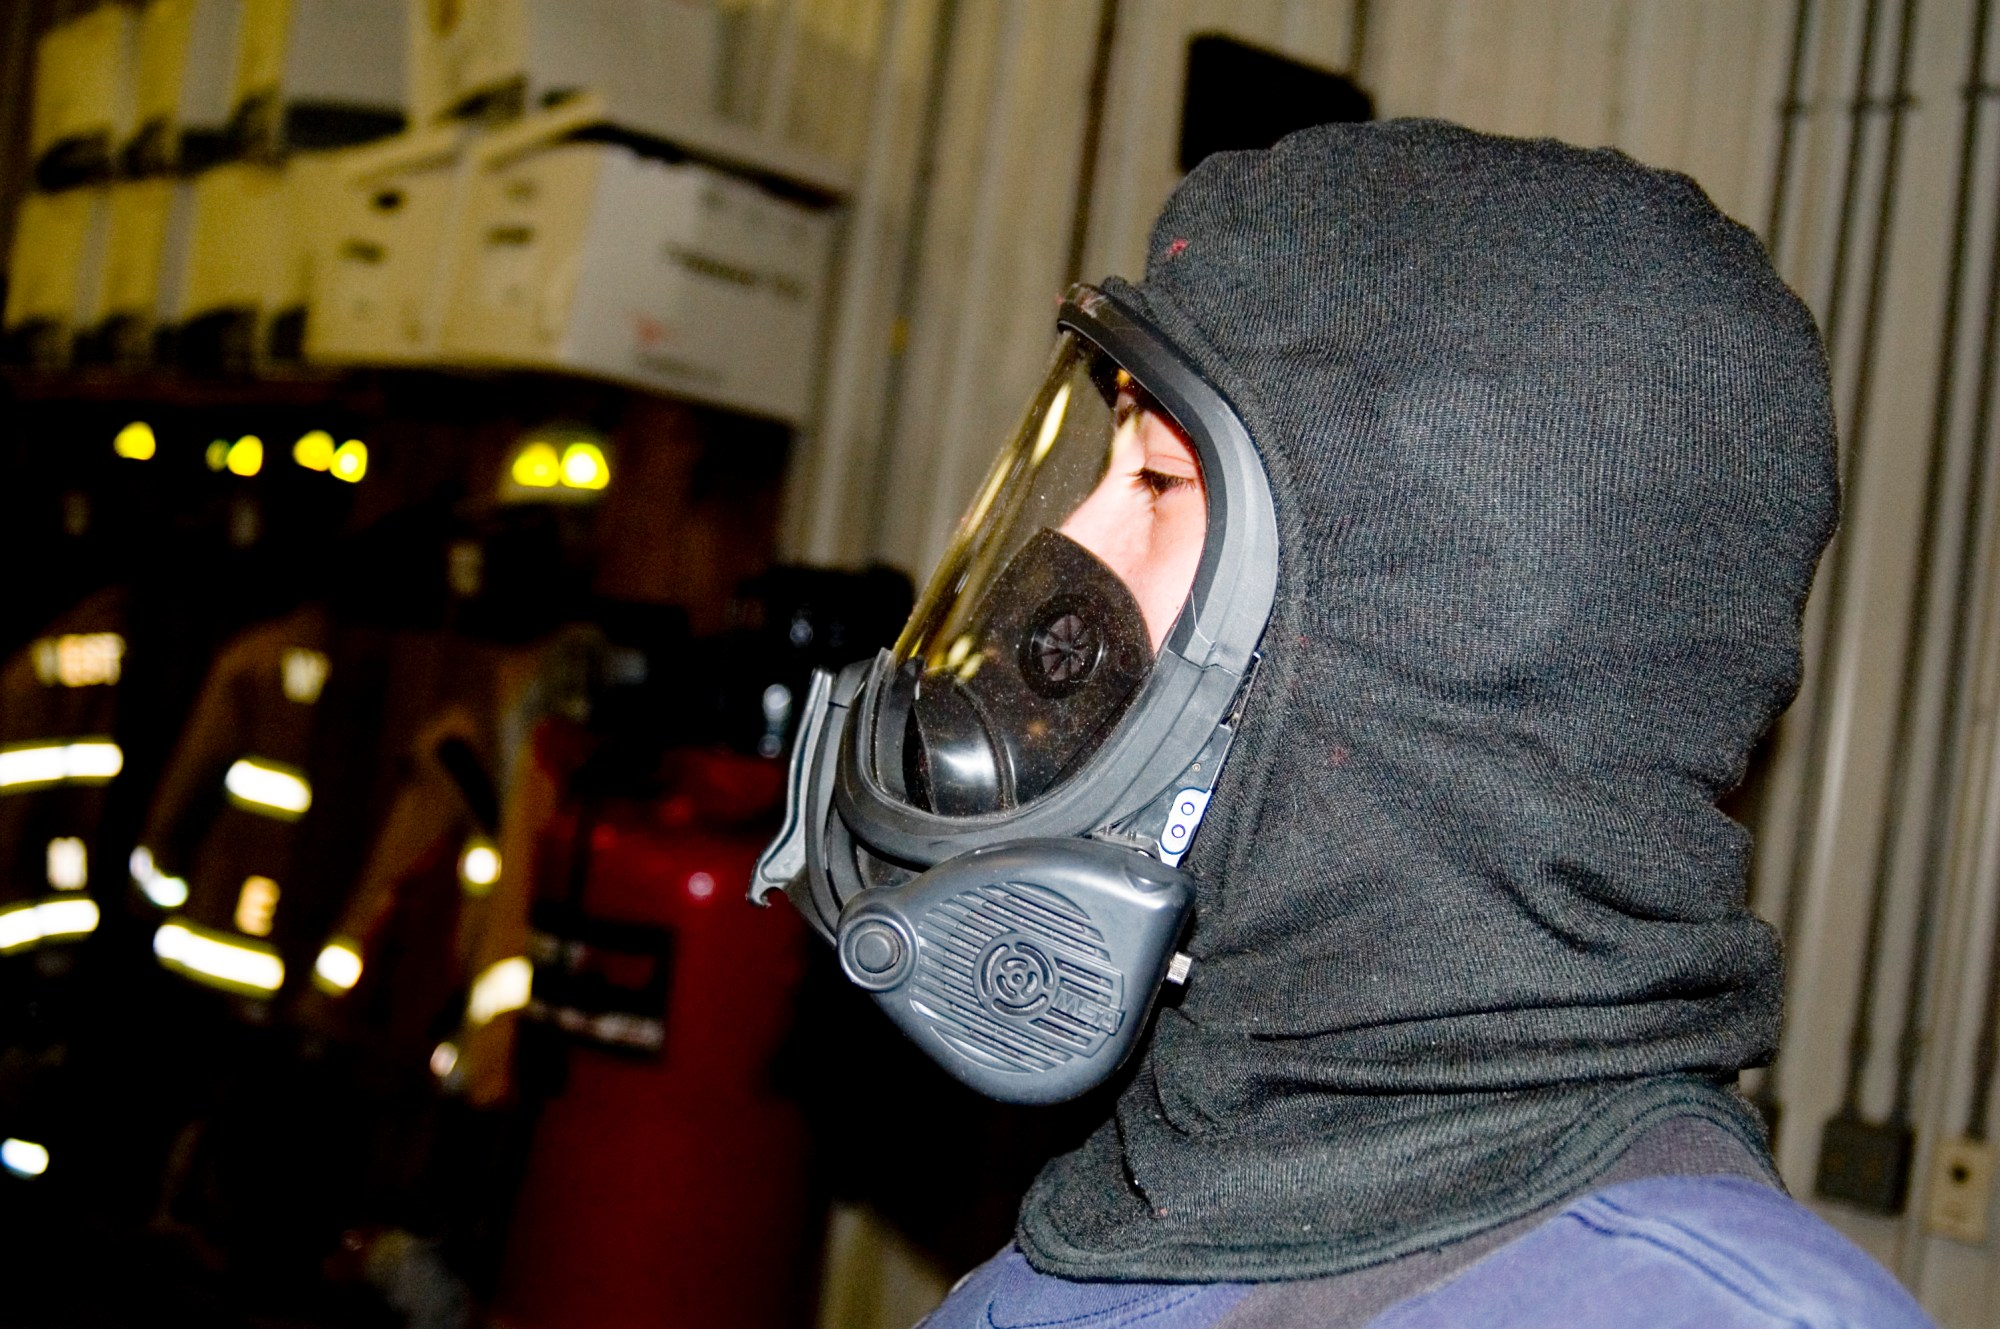 hight resolution of a person wearing an msa brand breathing mask with a nomex hood on this face piece attaches with a regulator to form a full scba